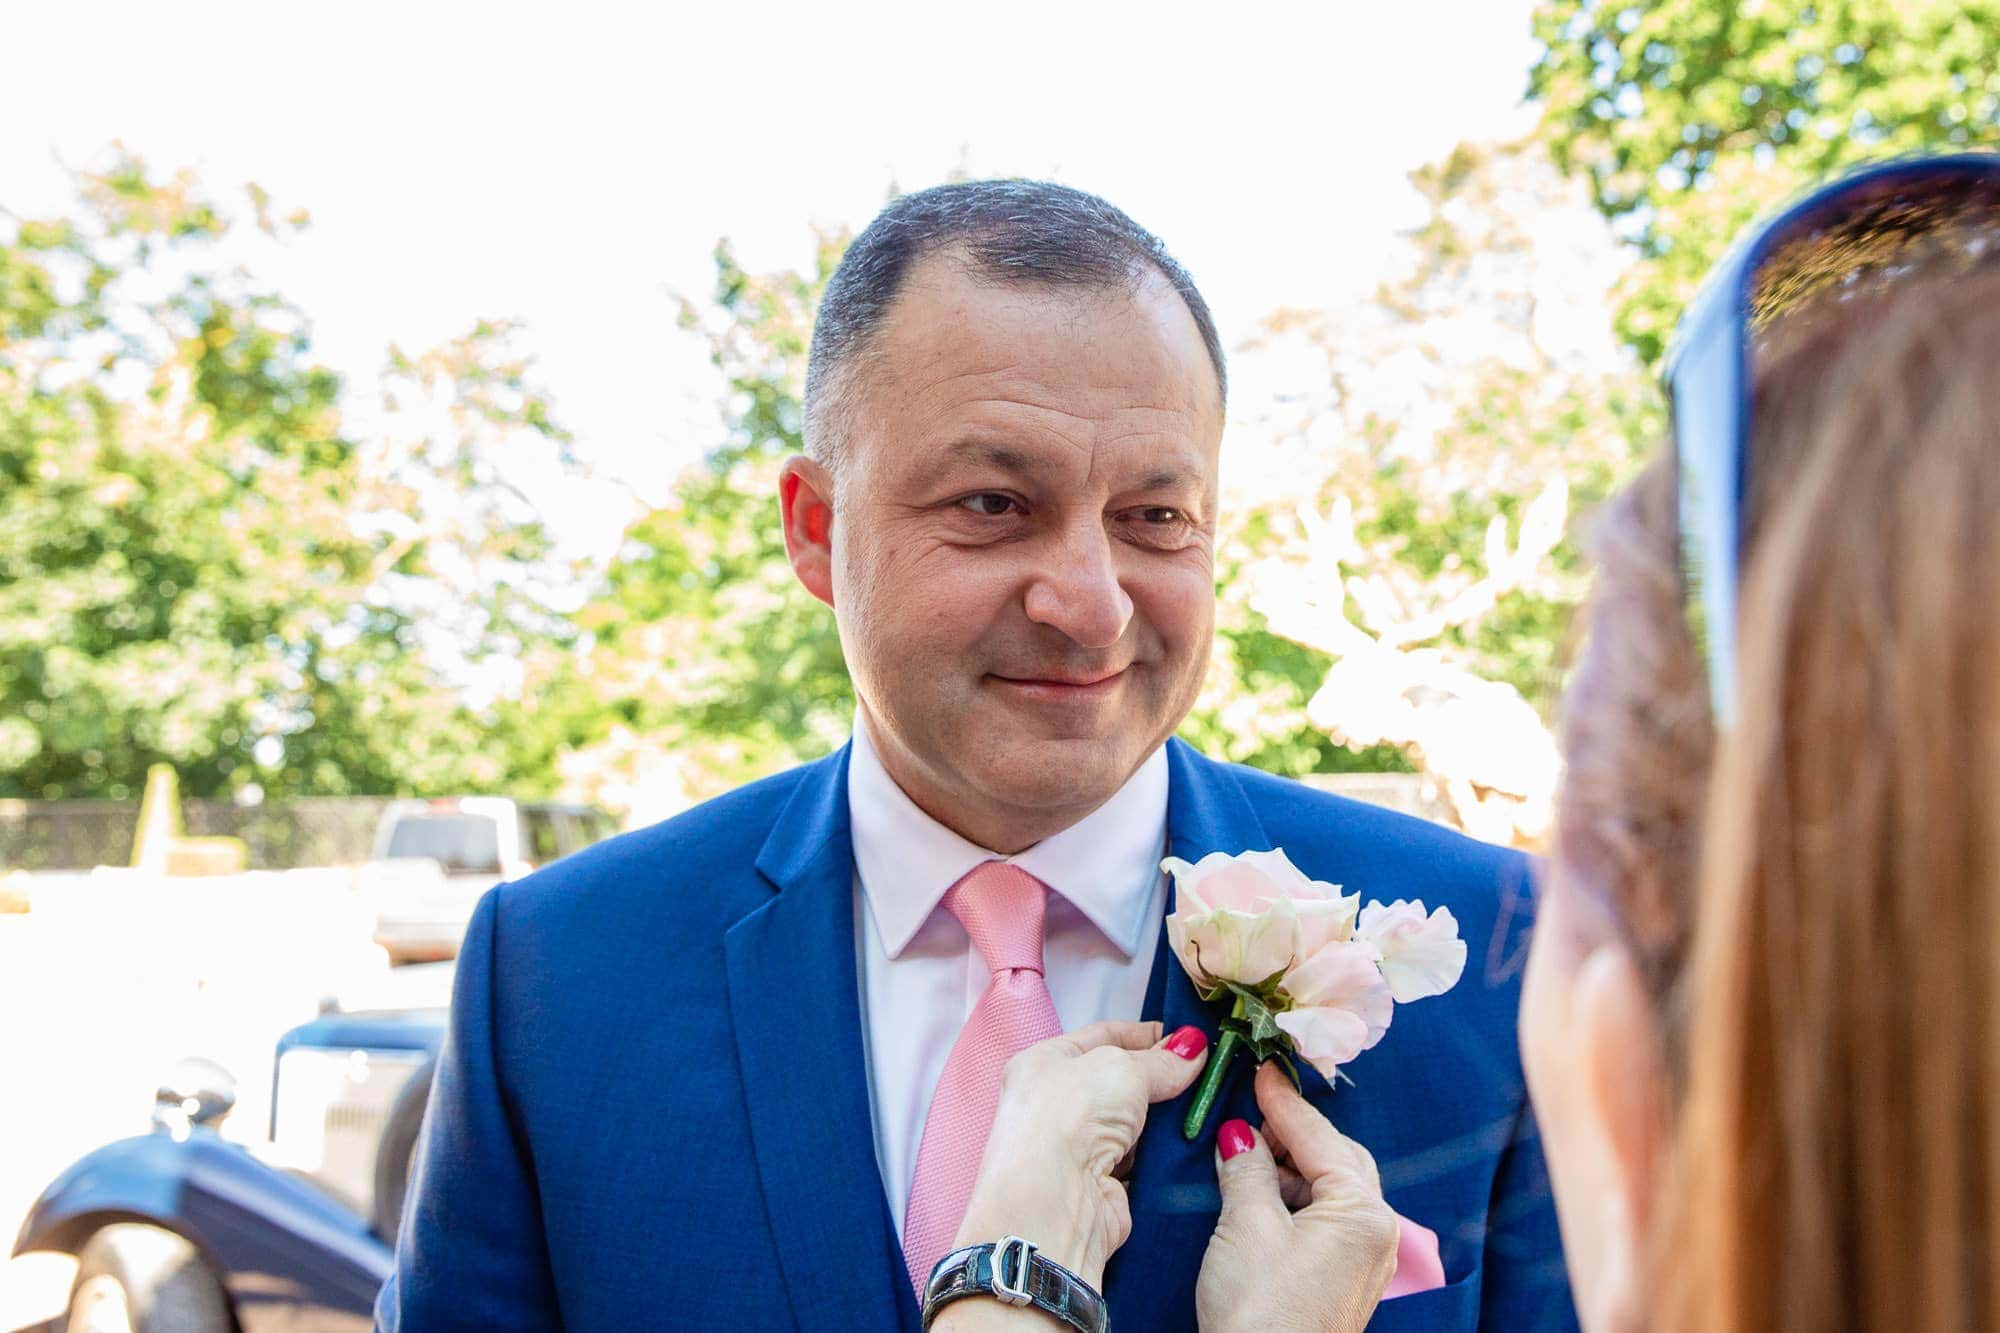 Groom in blue suit having pink flower button hole put on